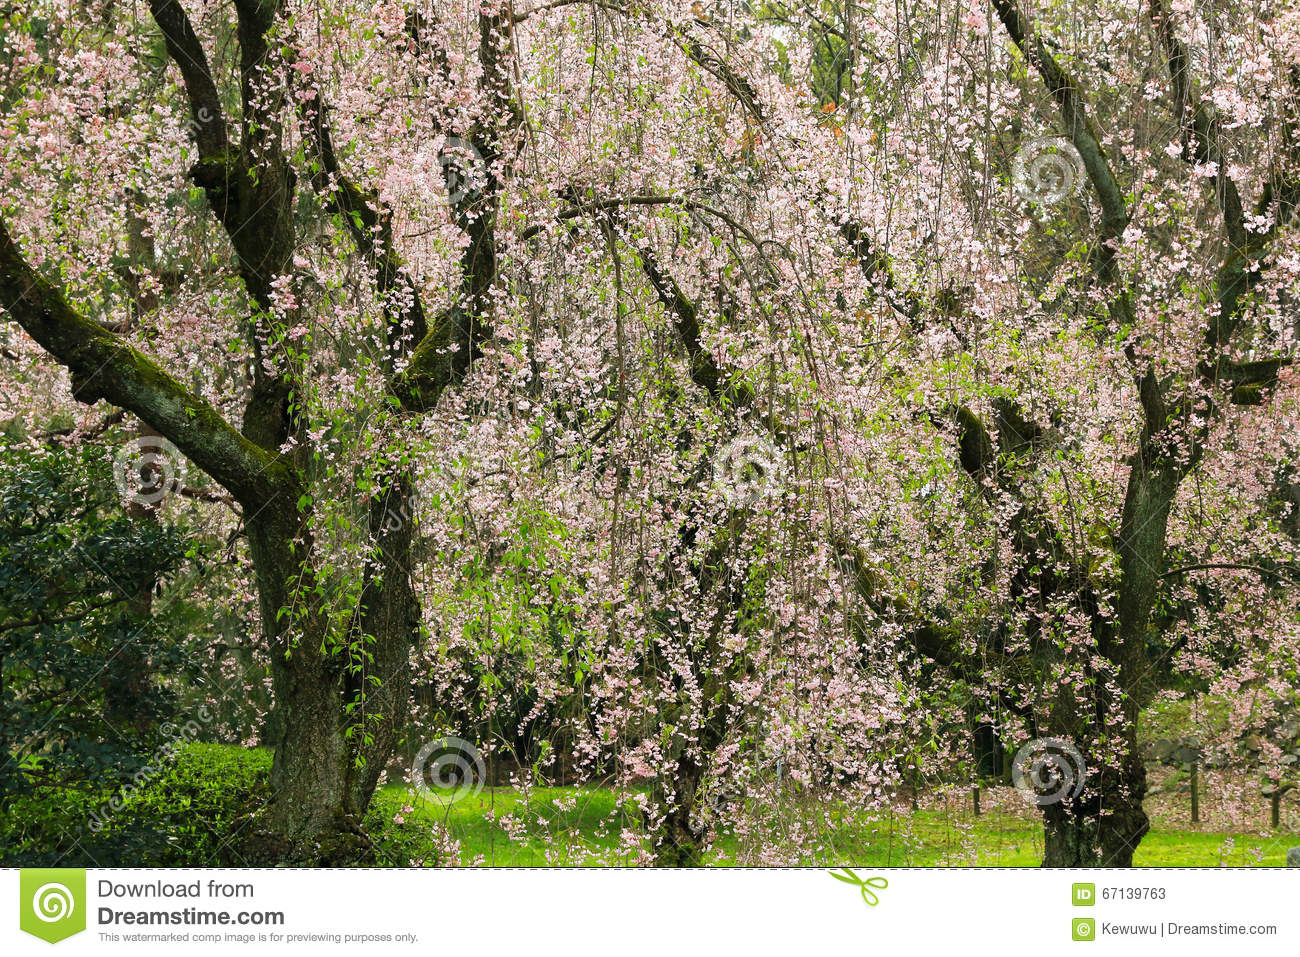 Weeping Japanese Sakura Cherry Blossom Trees With Pink Flowers I